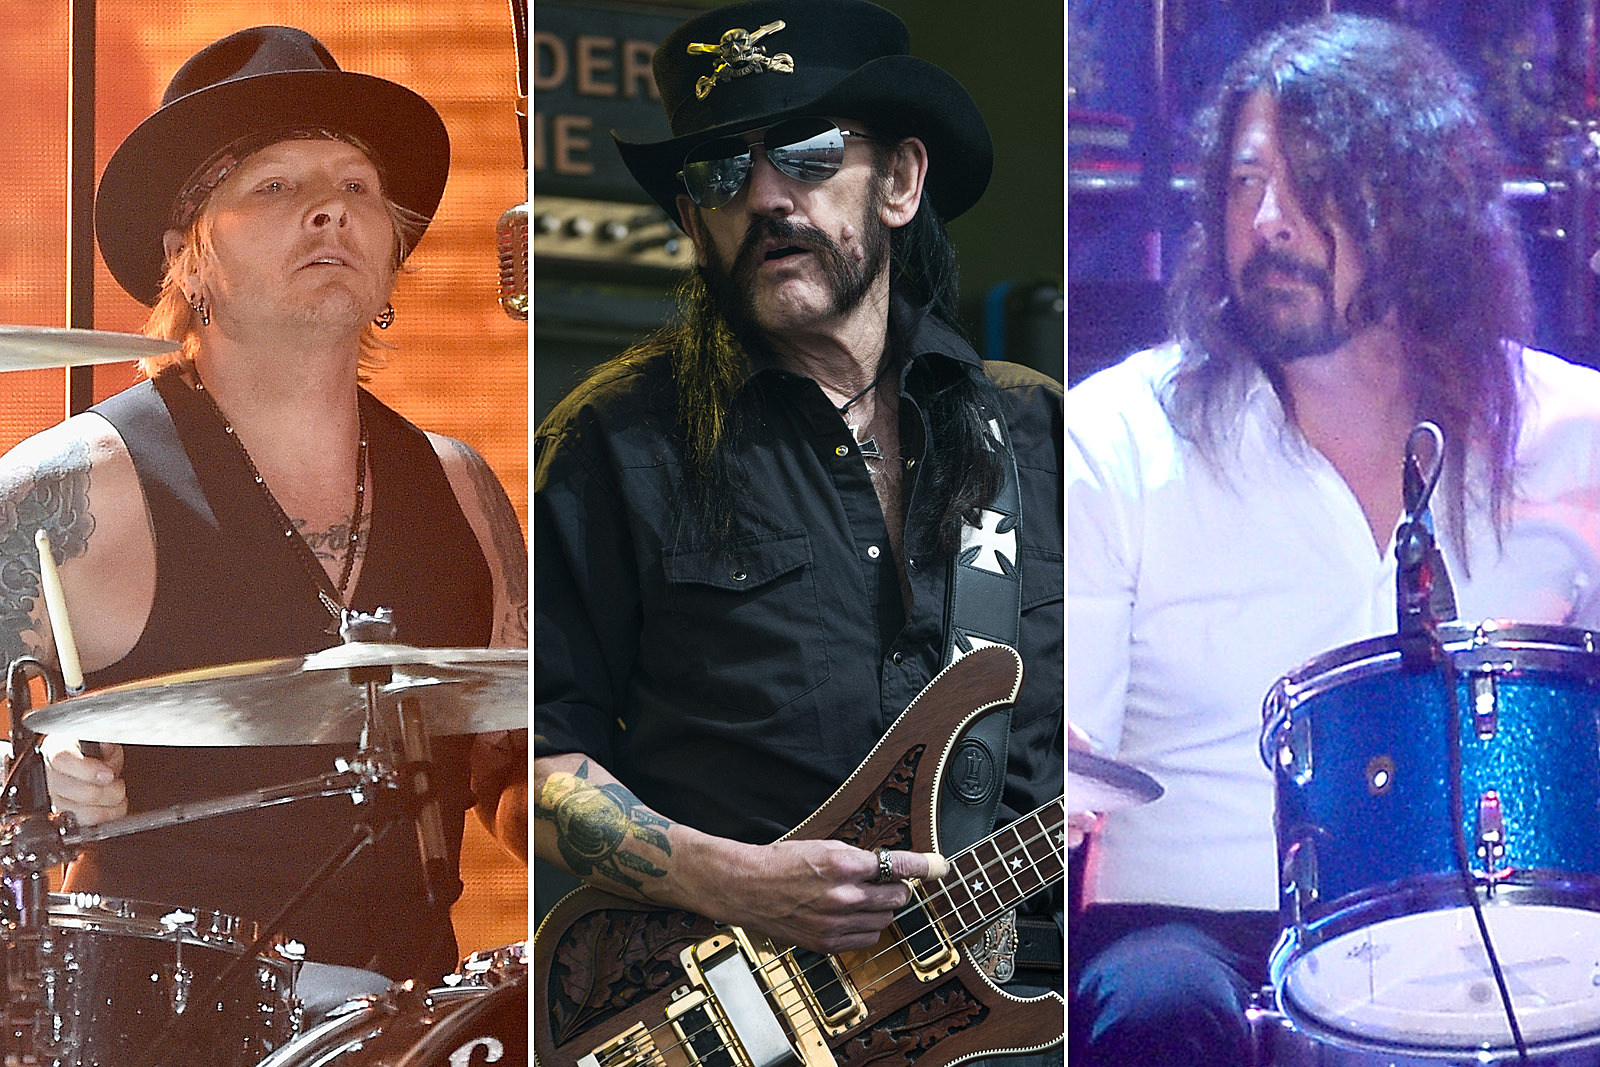 'Dave Grohl's Not Available': How Lemmy Hired Matt Sorum for Motorhead Tour